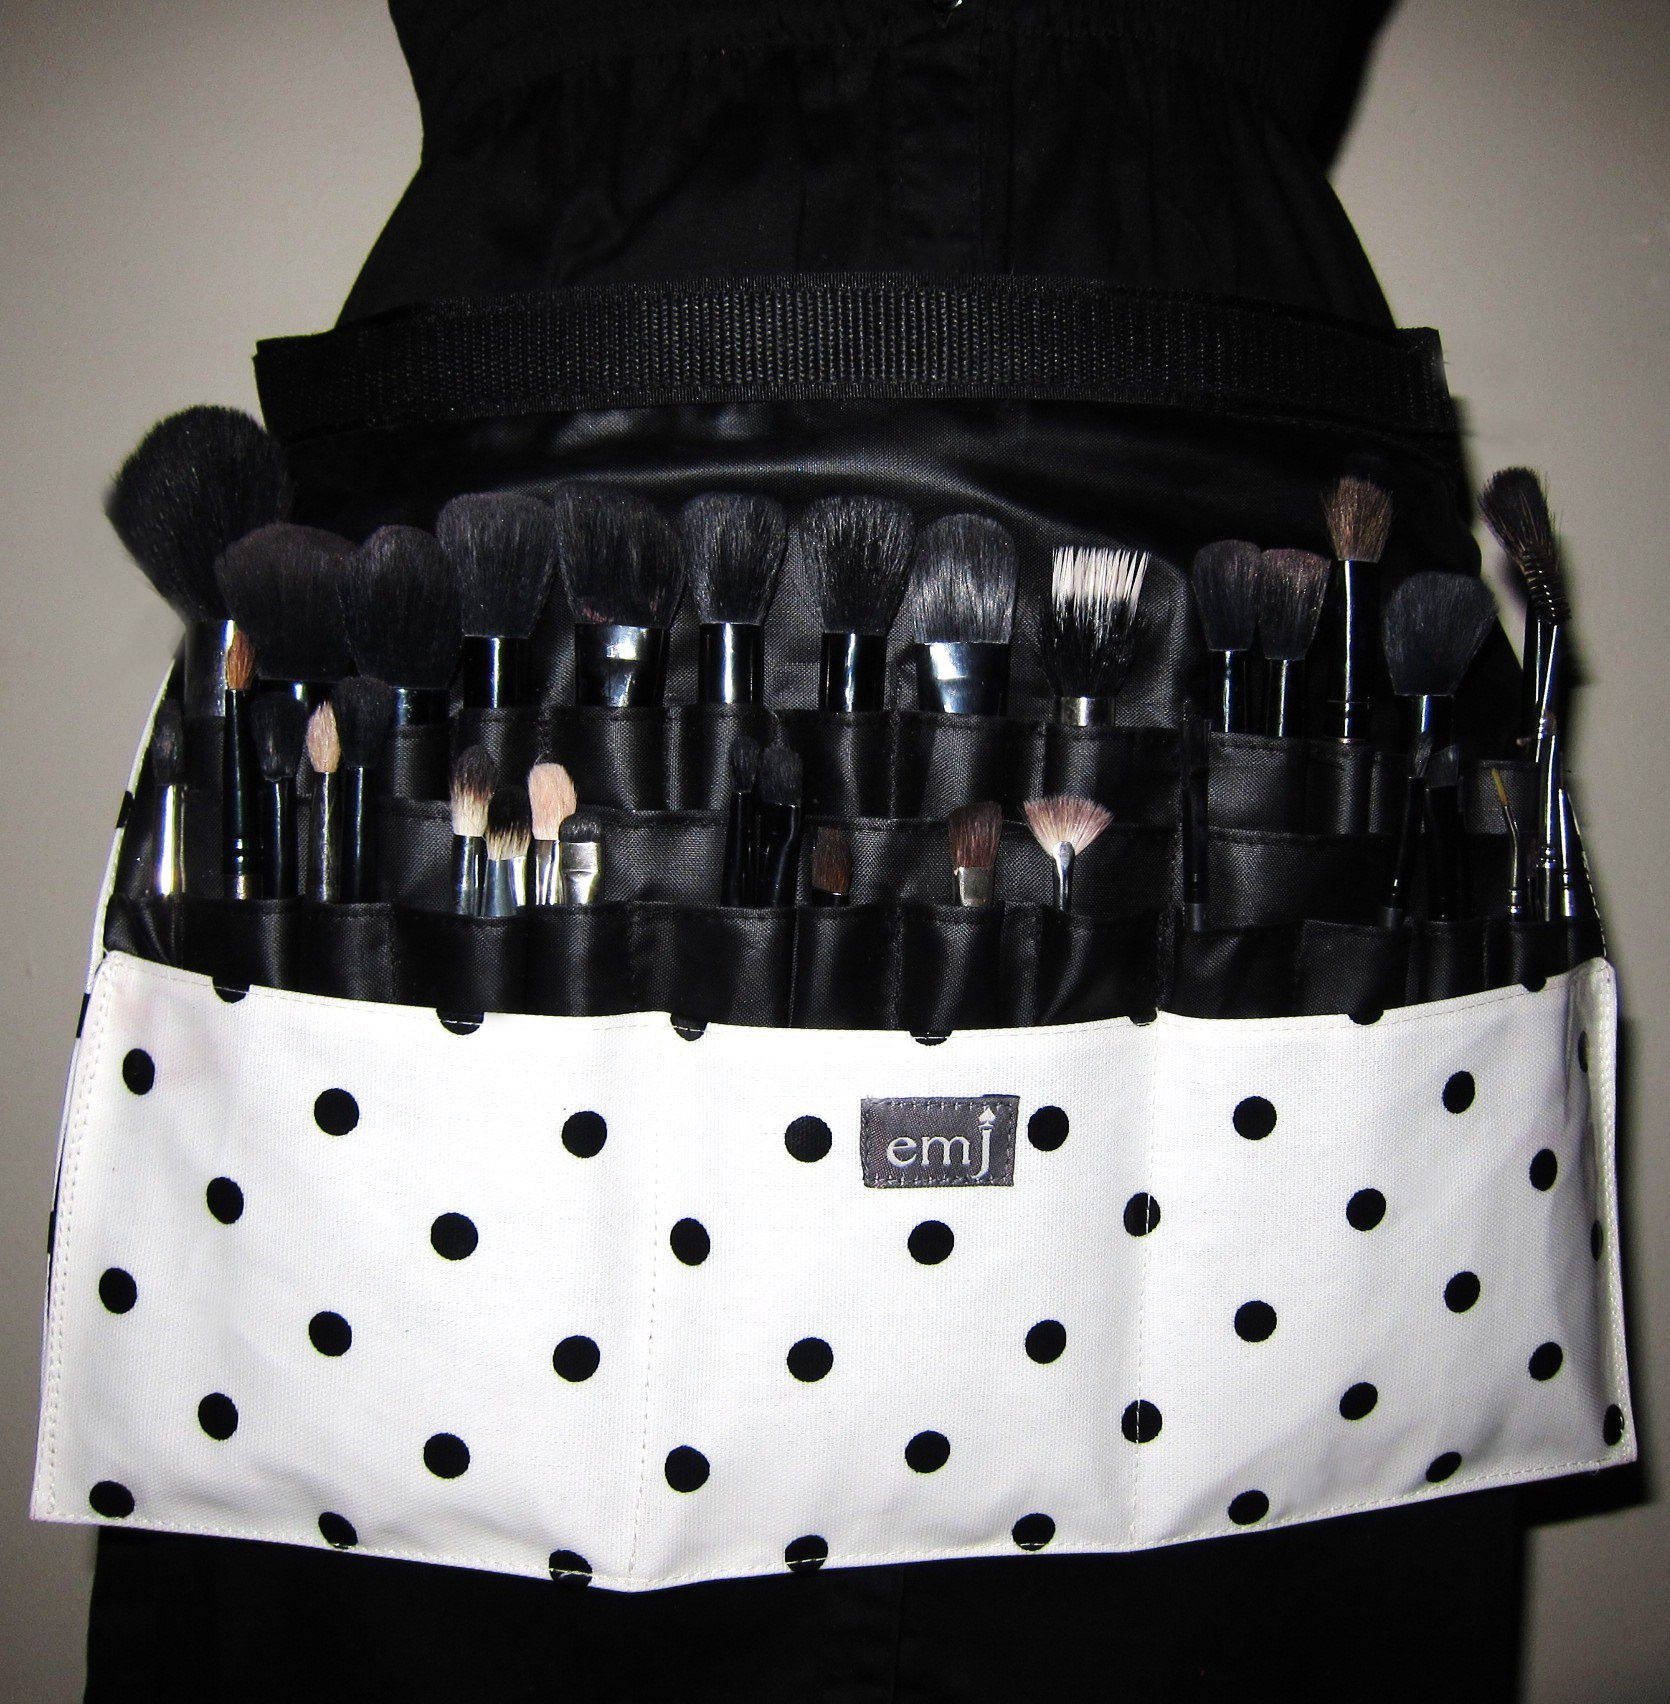 Make up brush belt 'Harry' School makeup, Makeup brushes